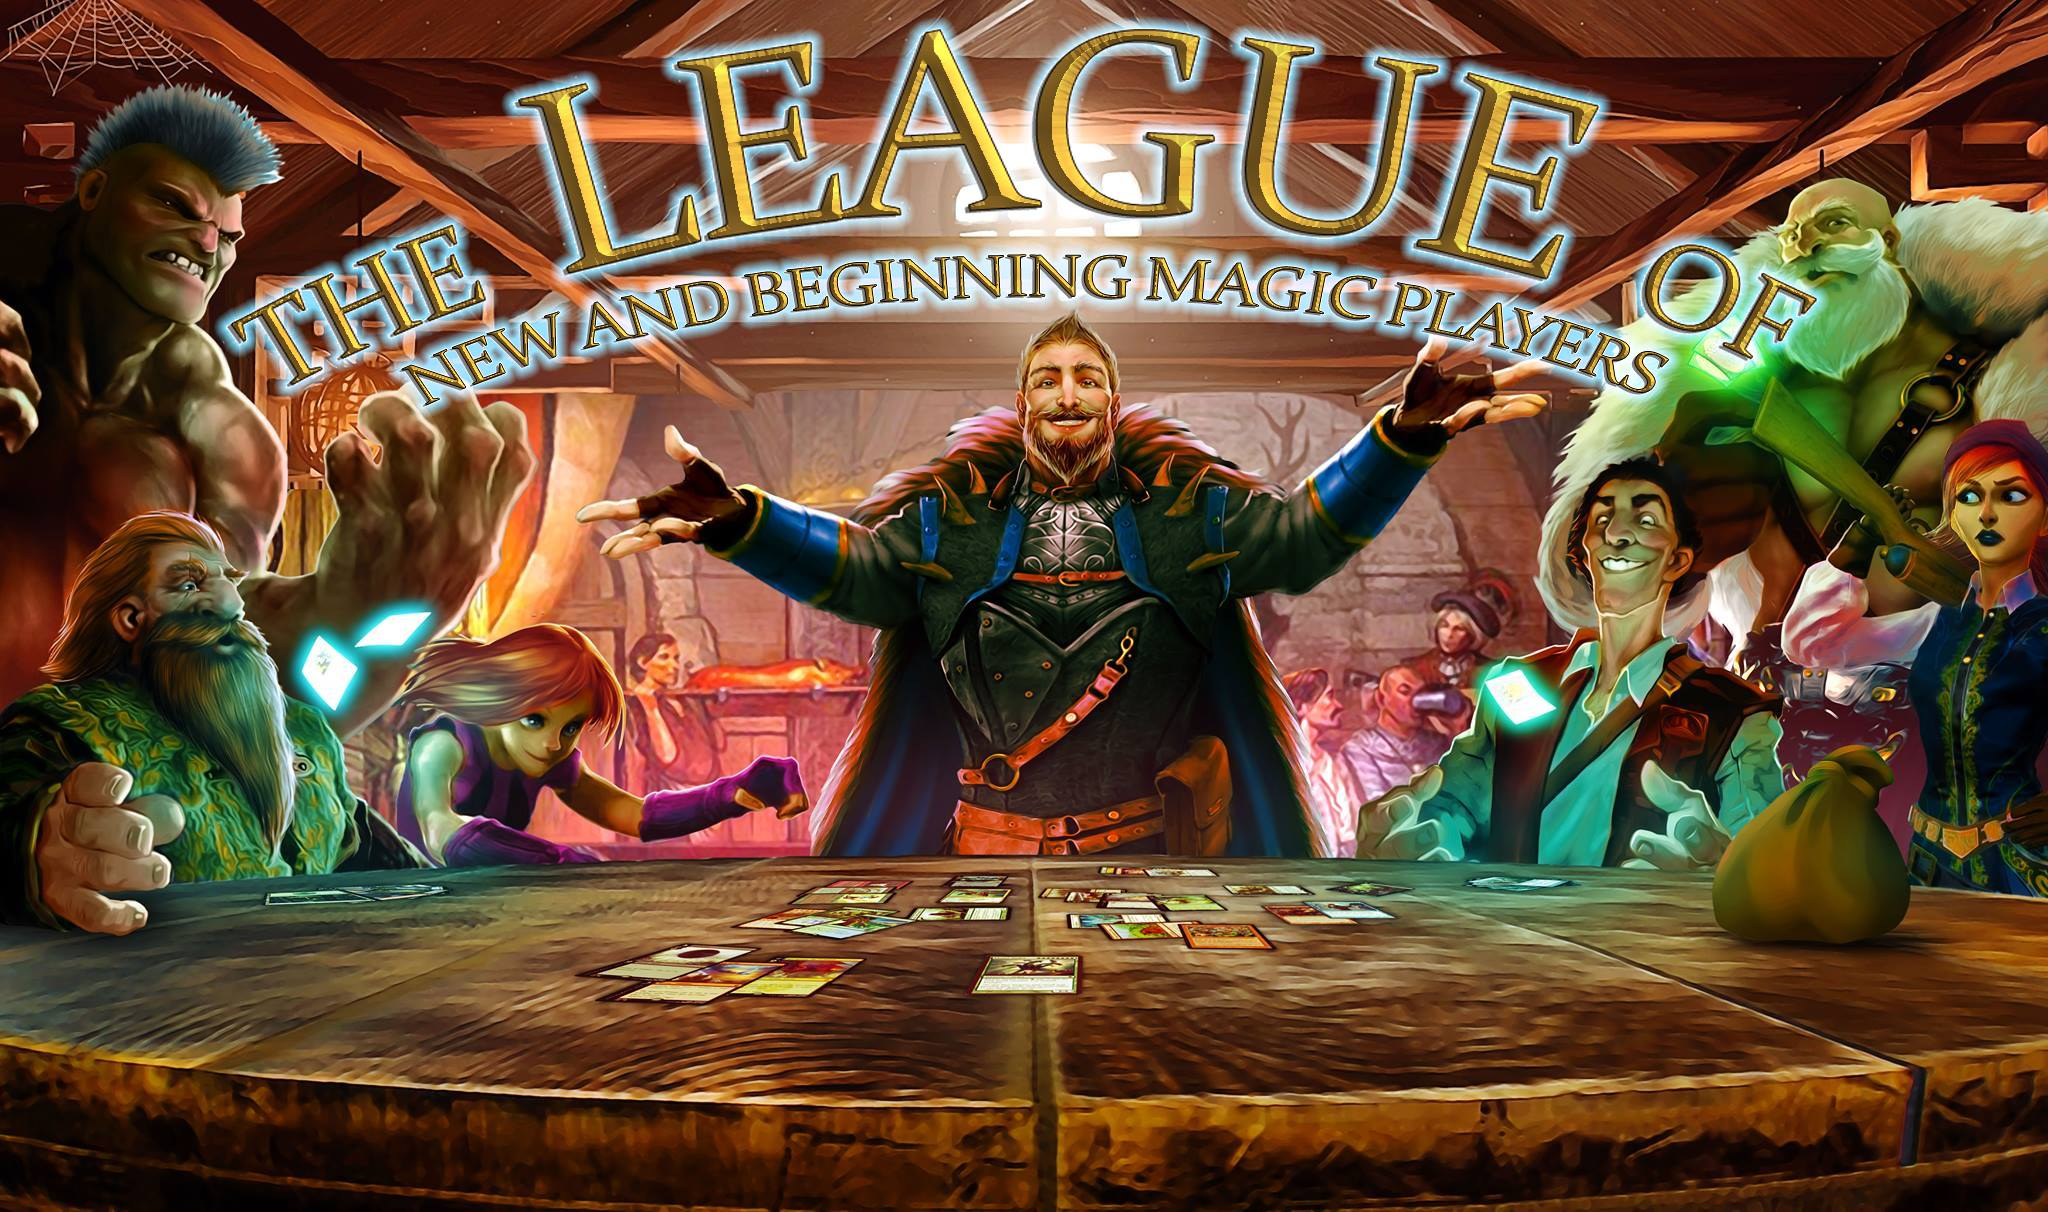 Judges from the League of New and Beginning MtG Players teambuilding afternoon: Let's get ready to judge again!